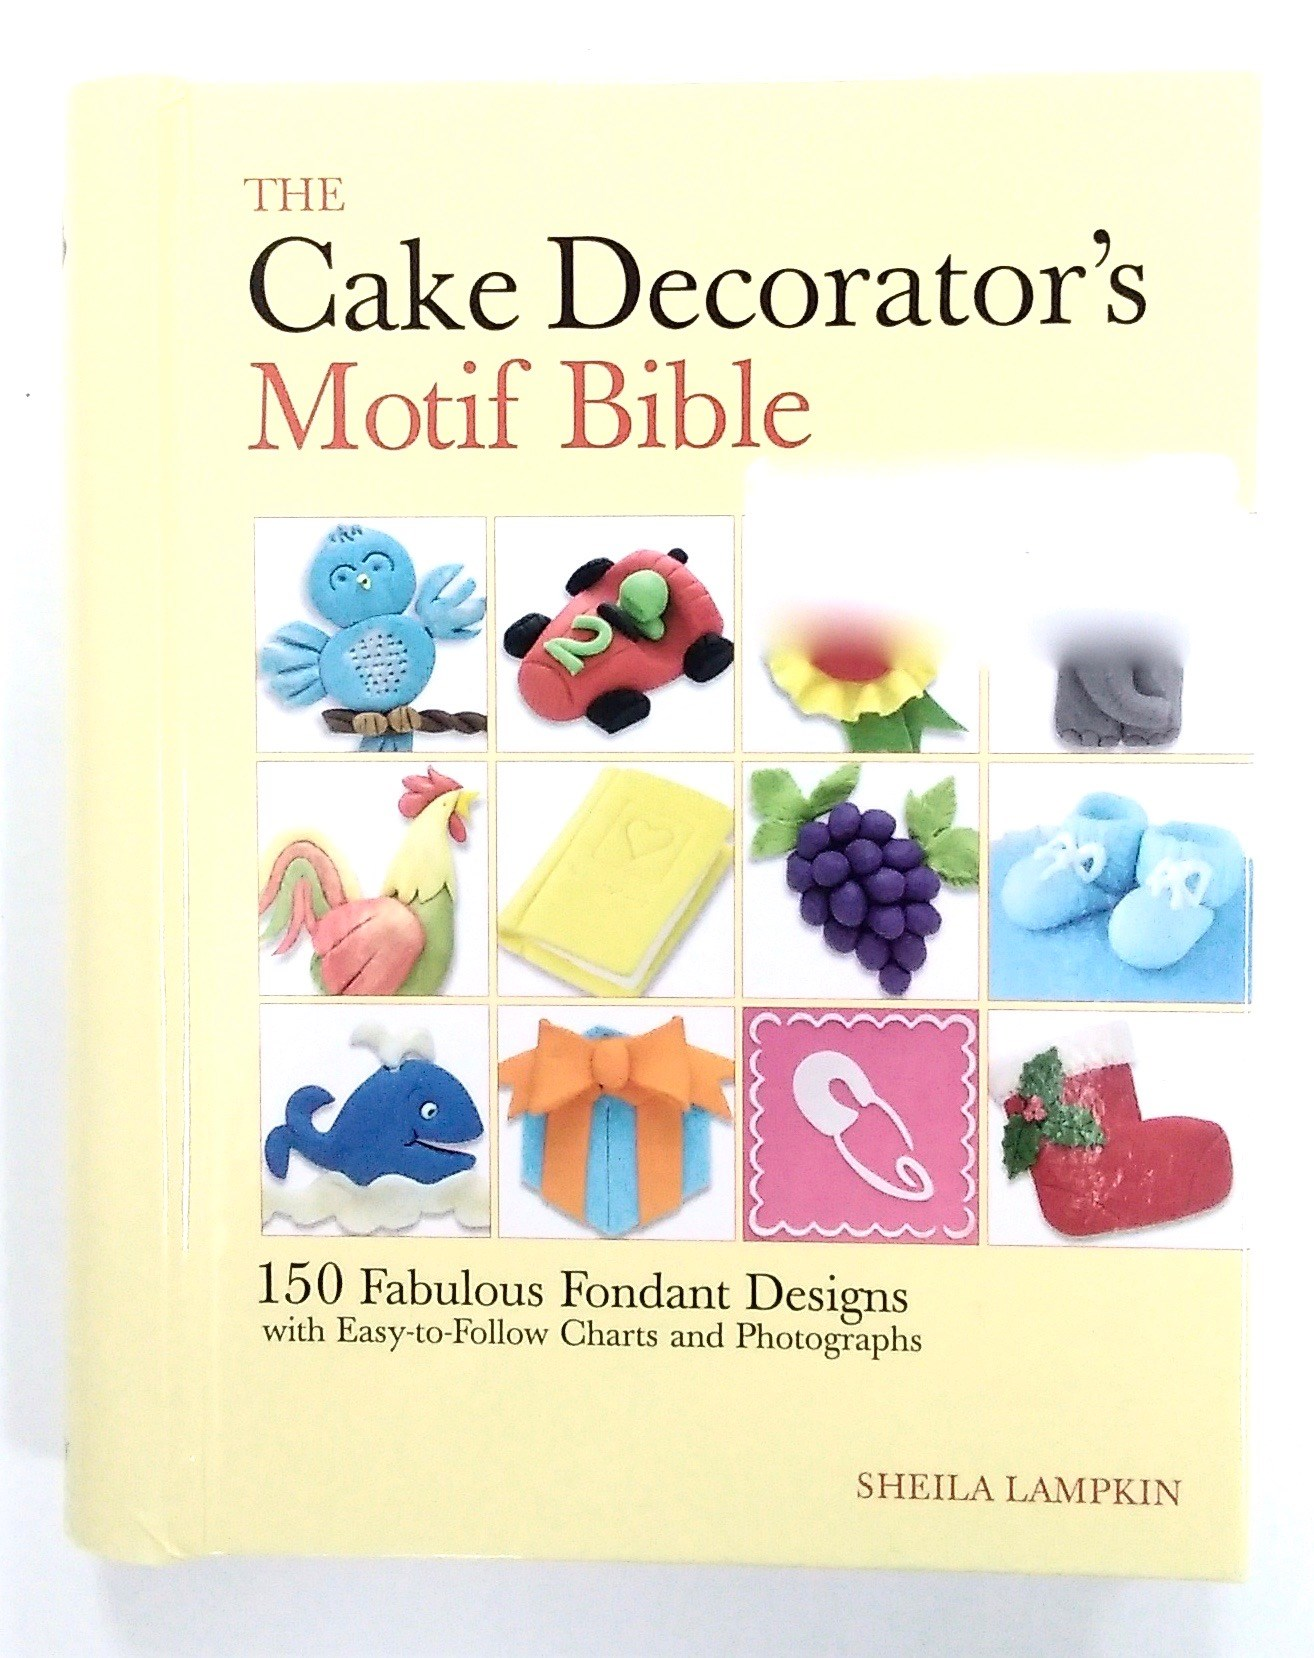 Cake Decorators' Motif Bible